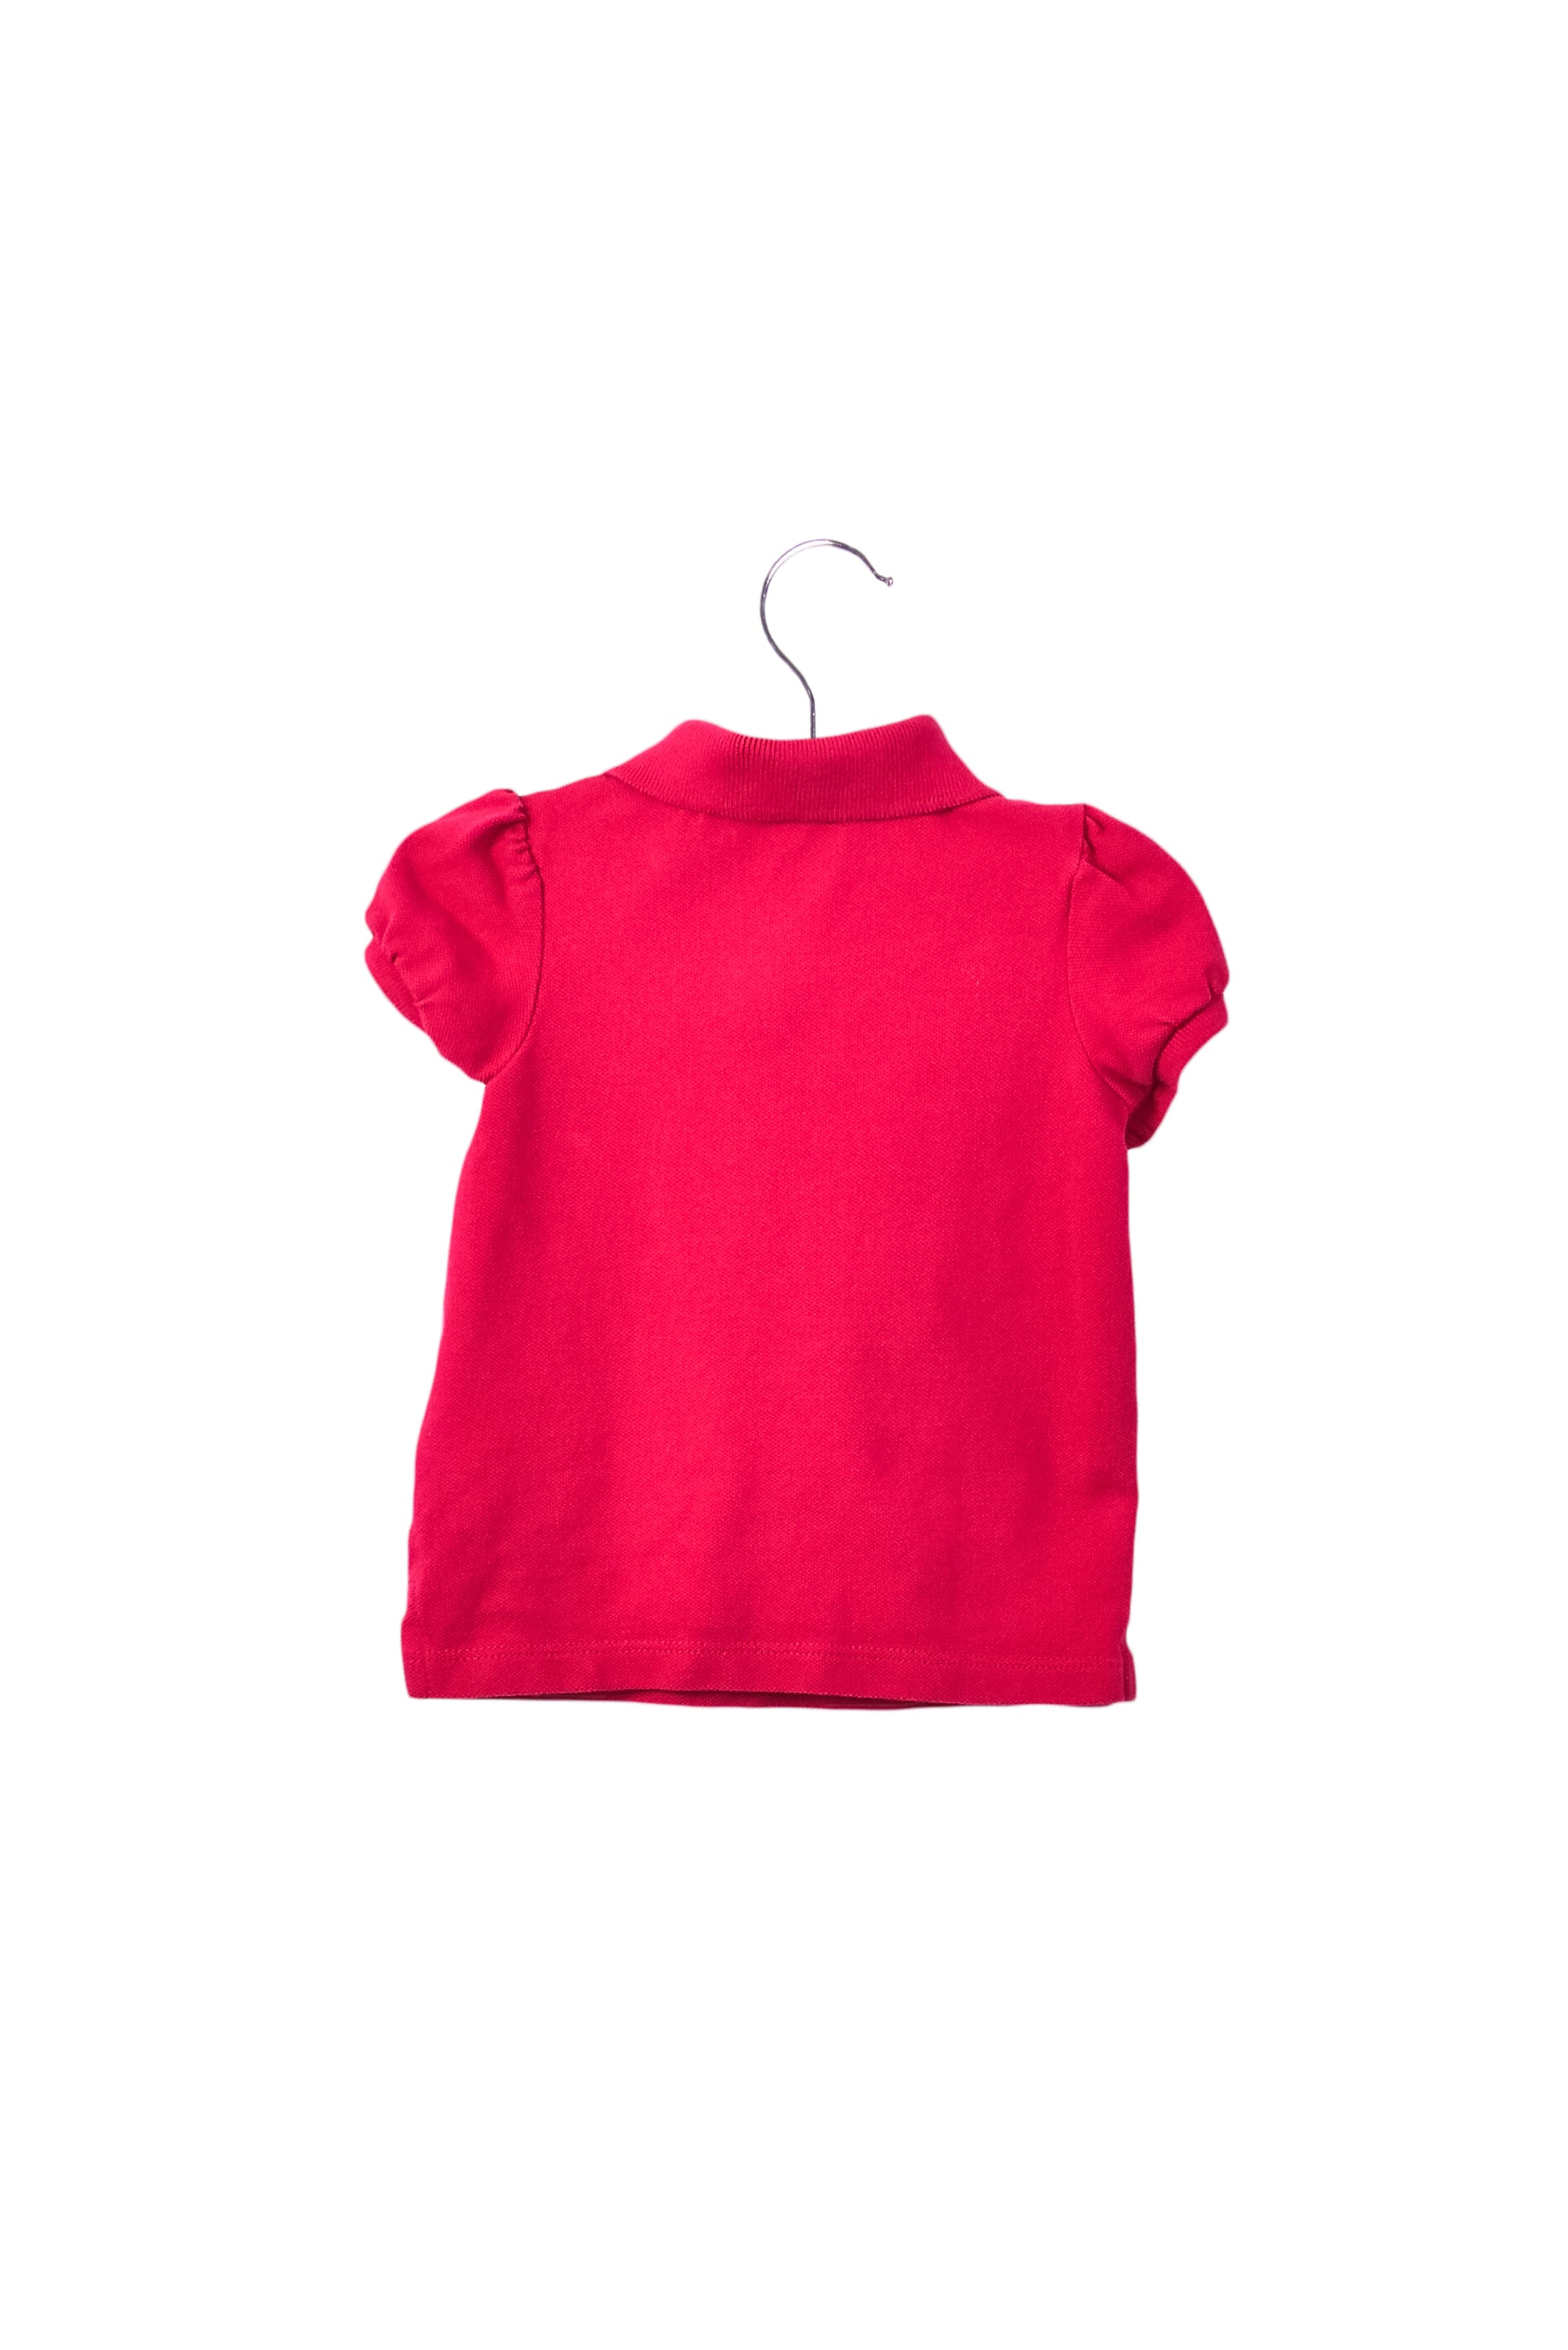 10033371 Juicy Couture Baby~Polo 9M at Retykle